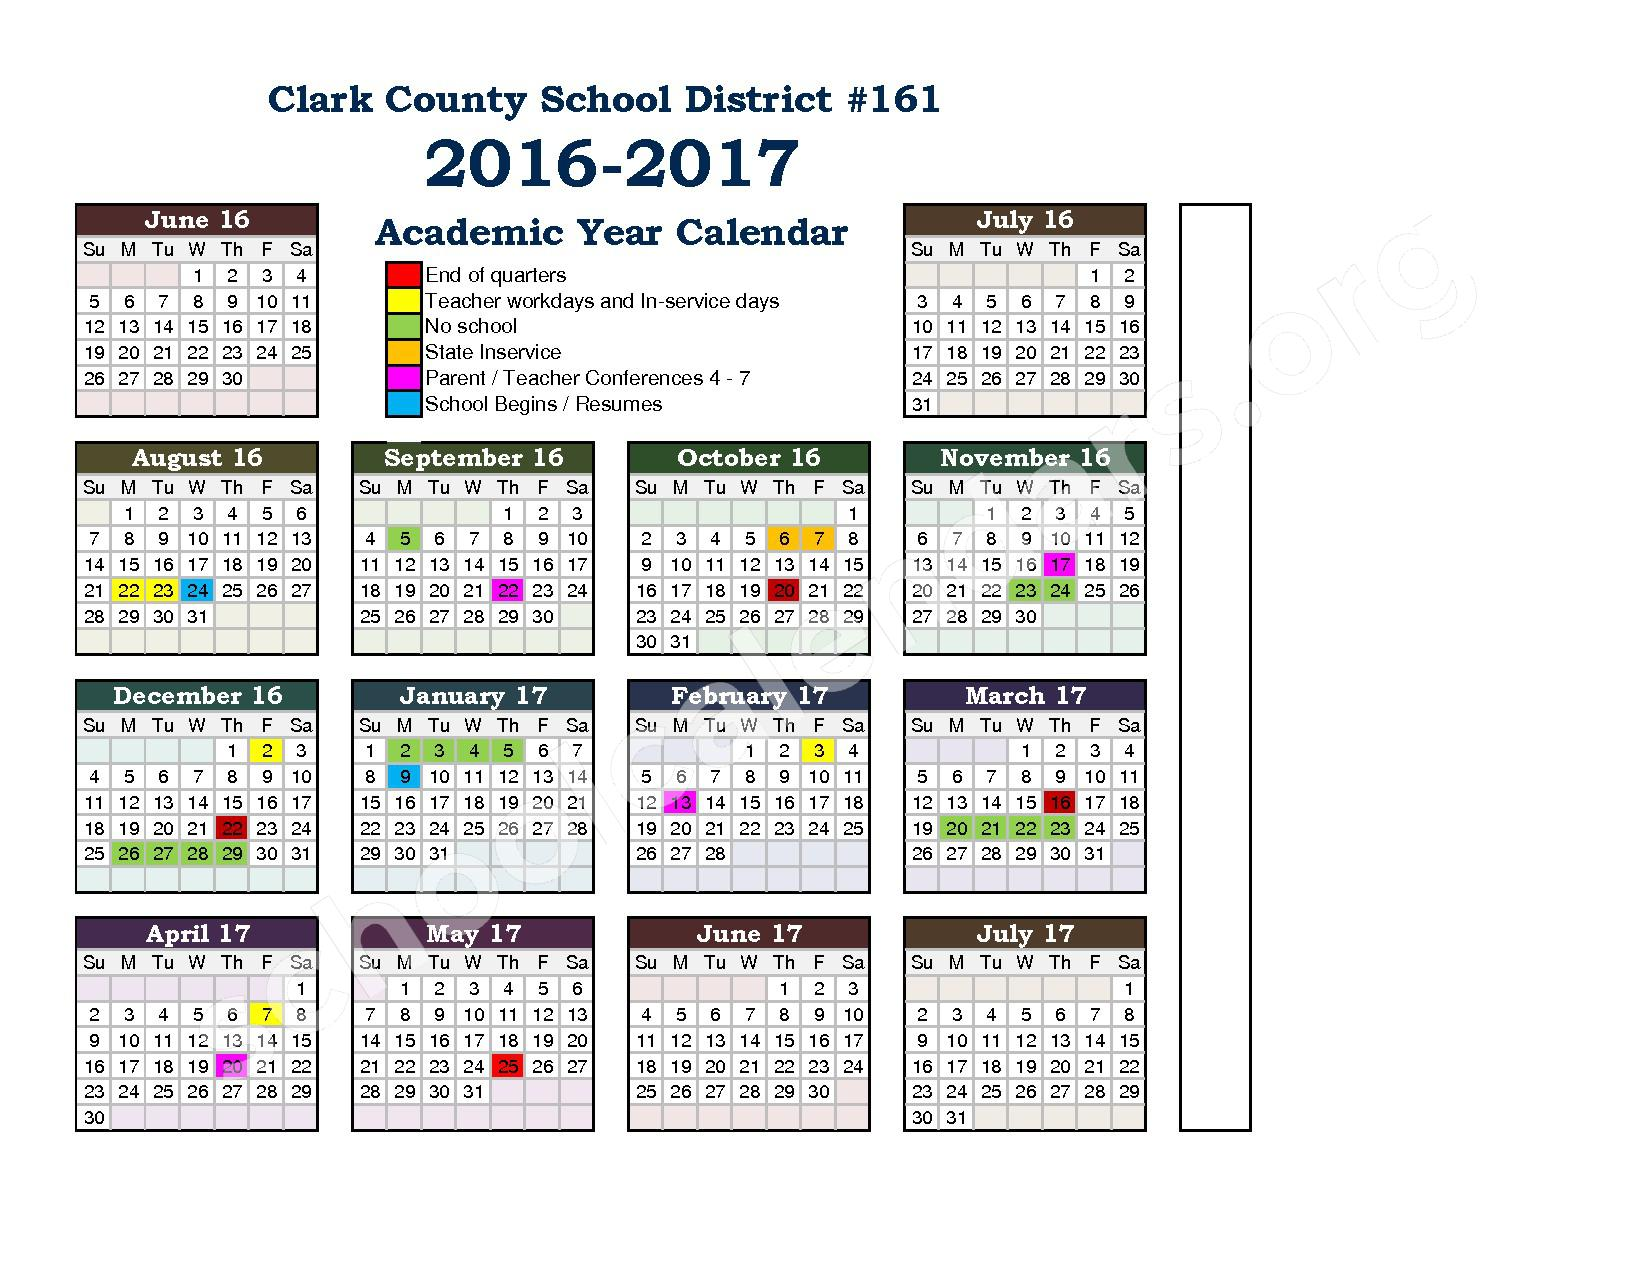 District School Calendar – Clark County School District 161 – page 1